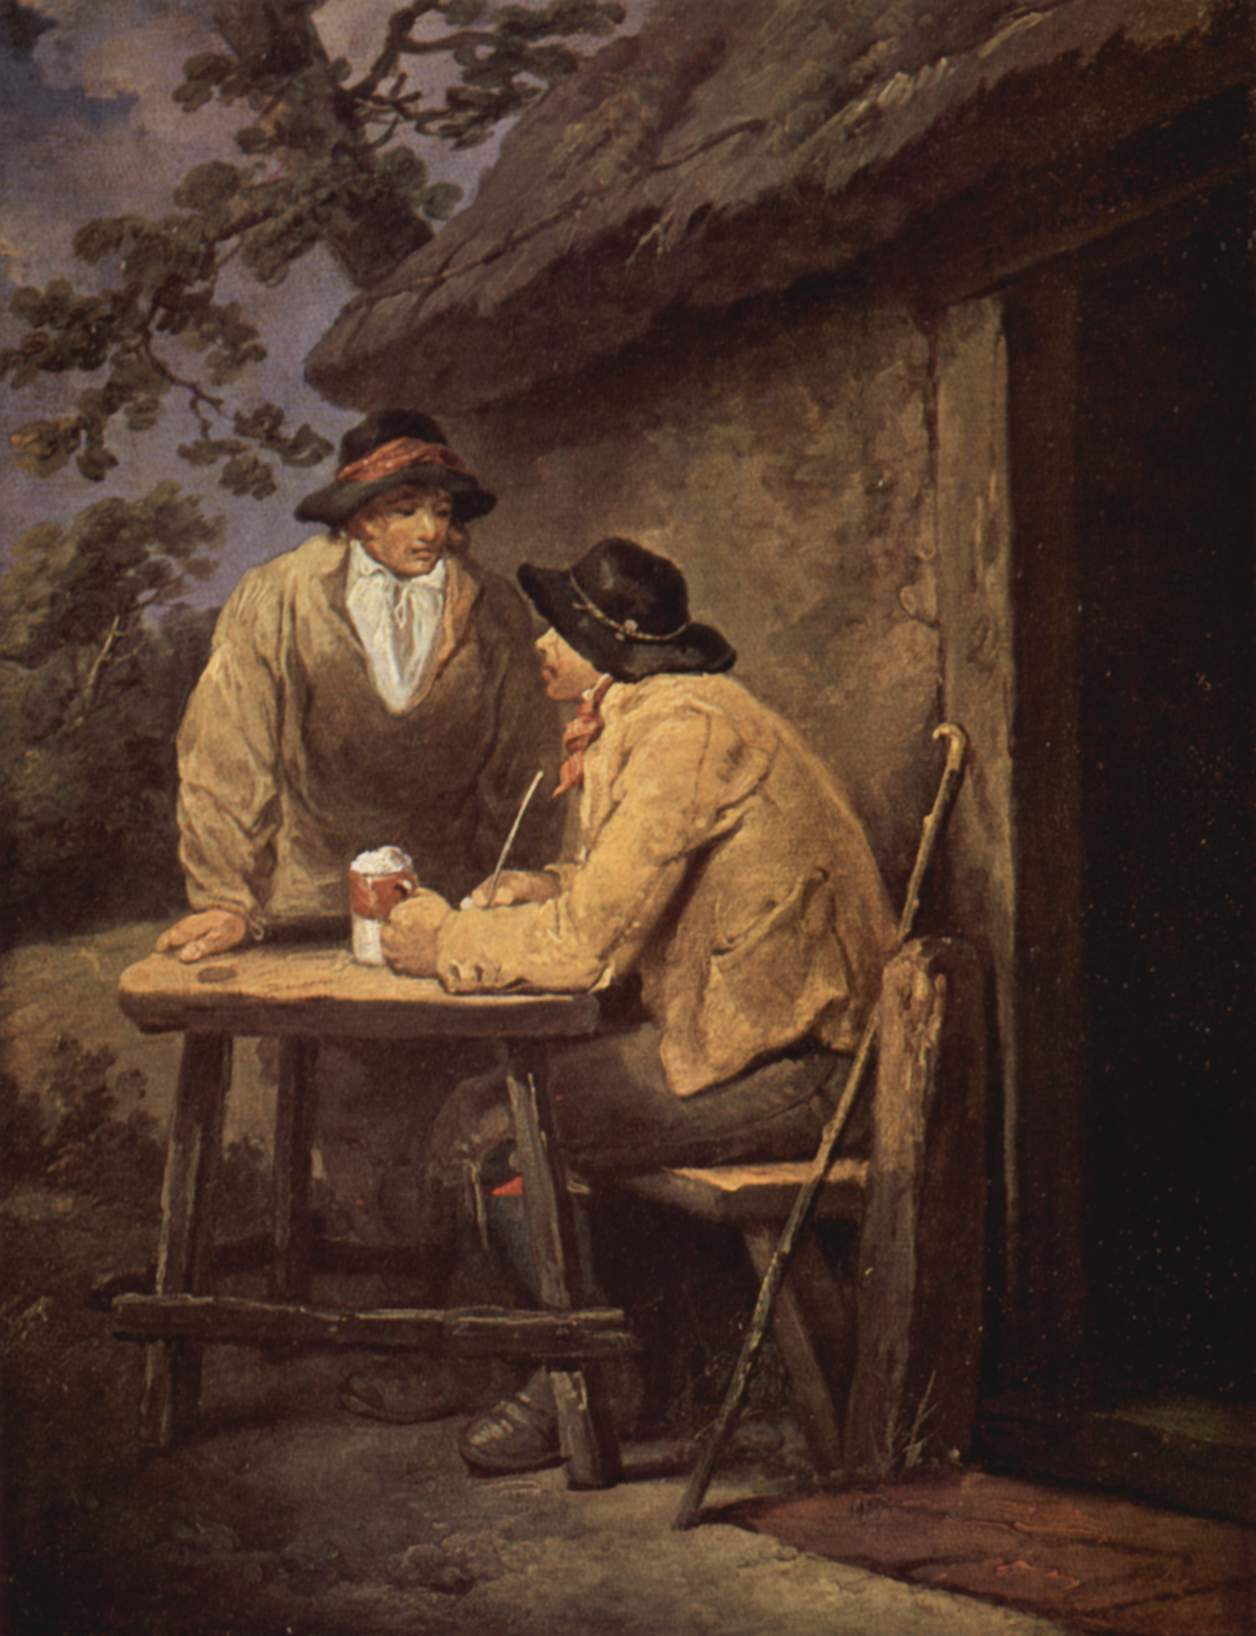 Siftingthepast Before The Inn George Morland 1792